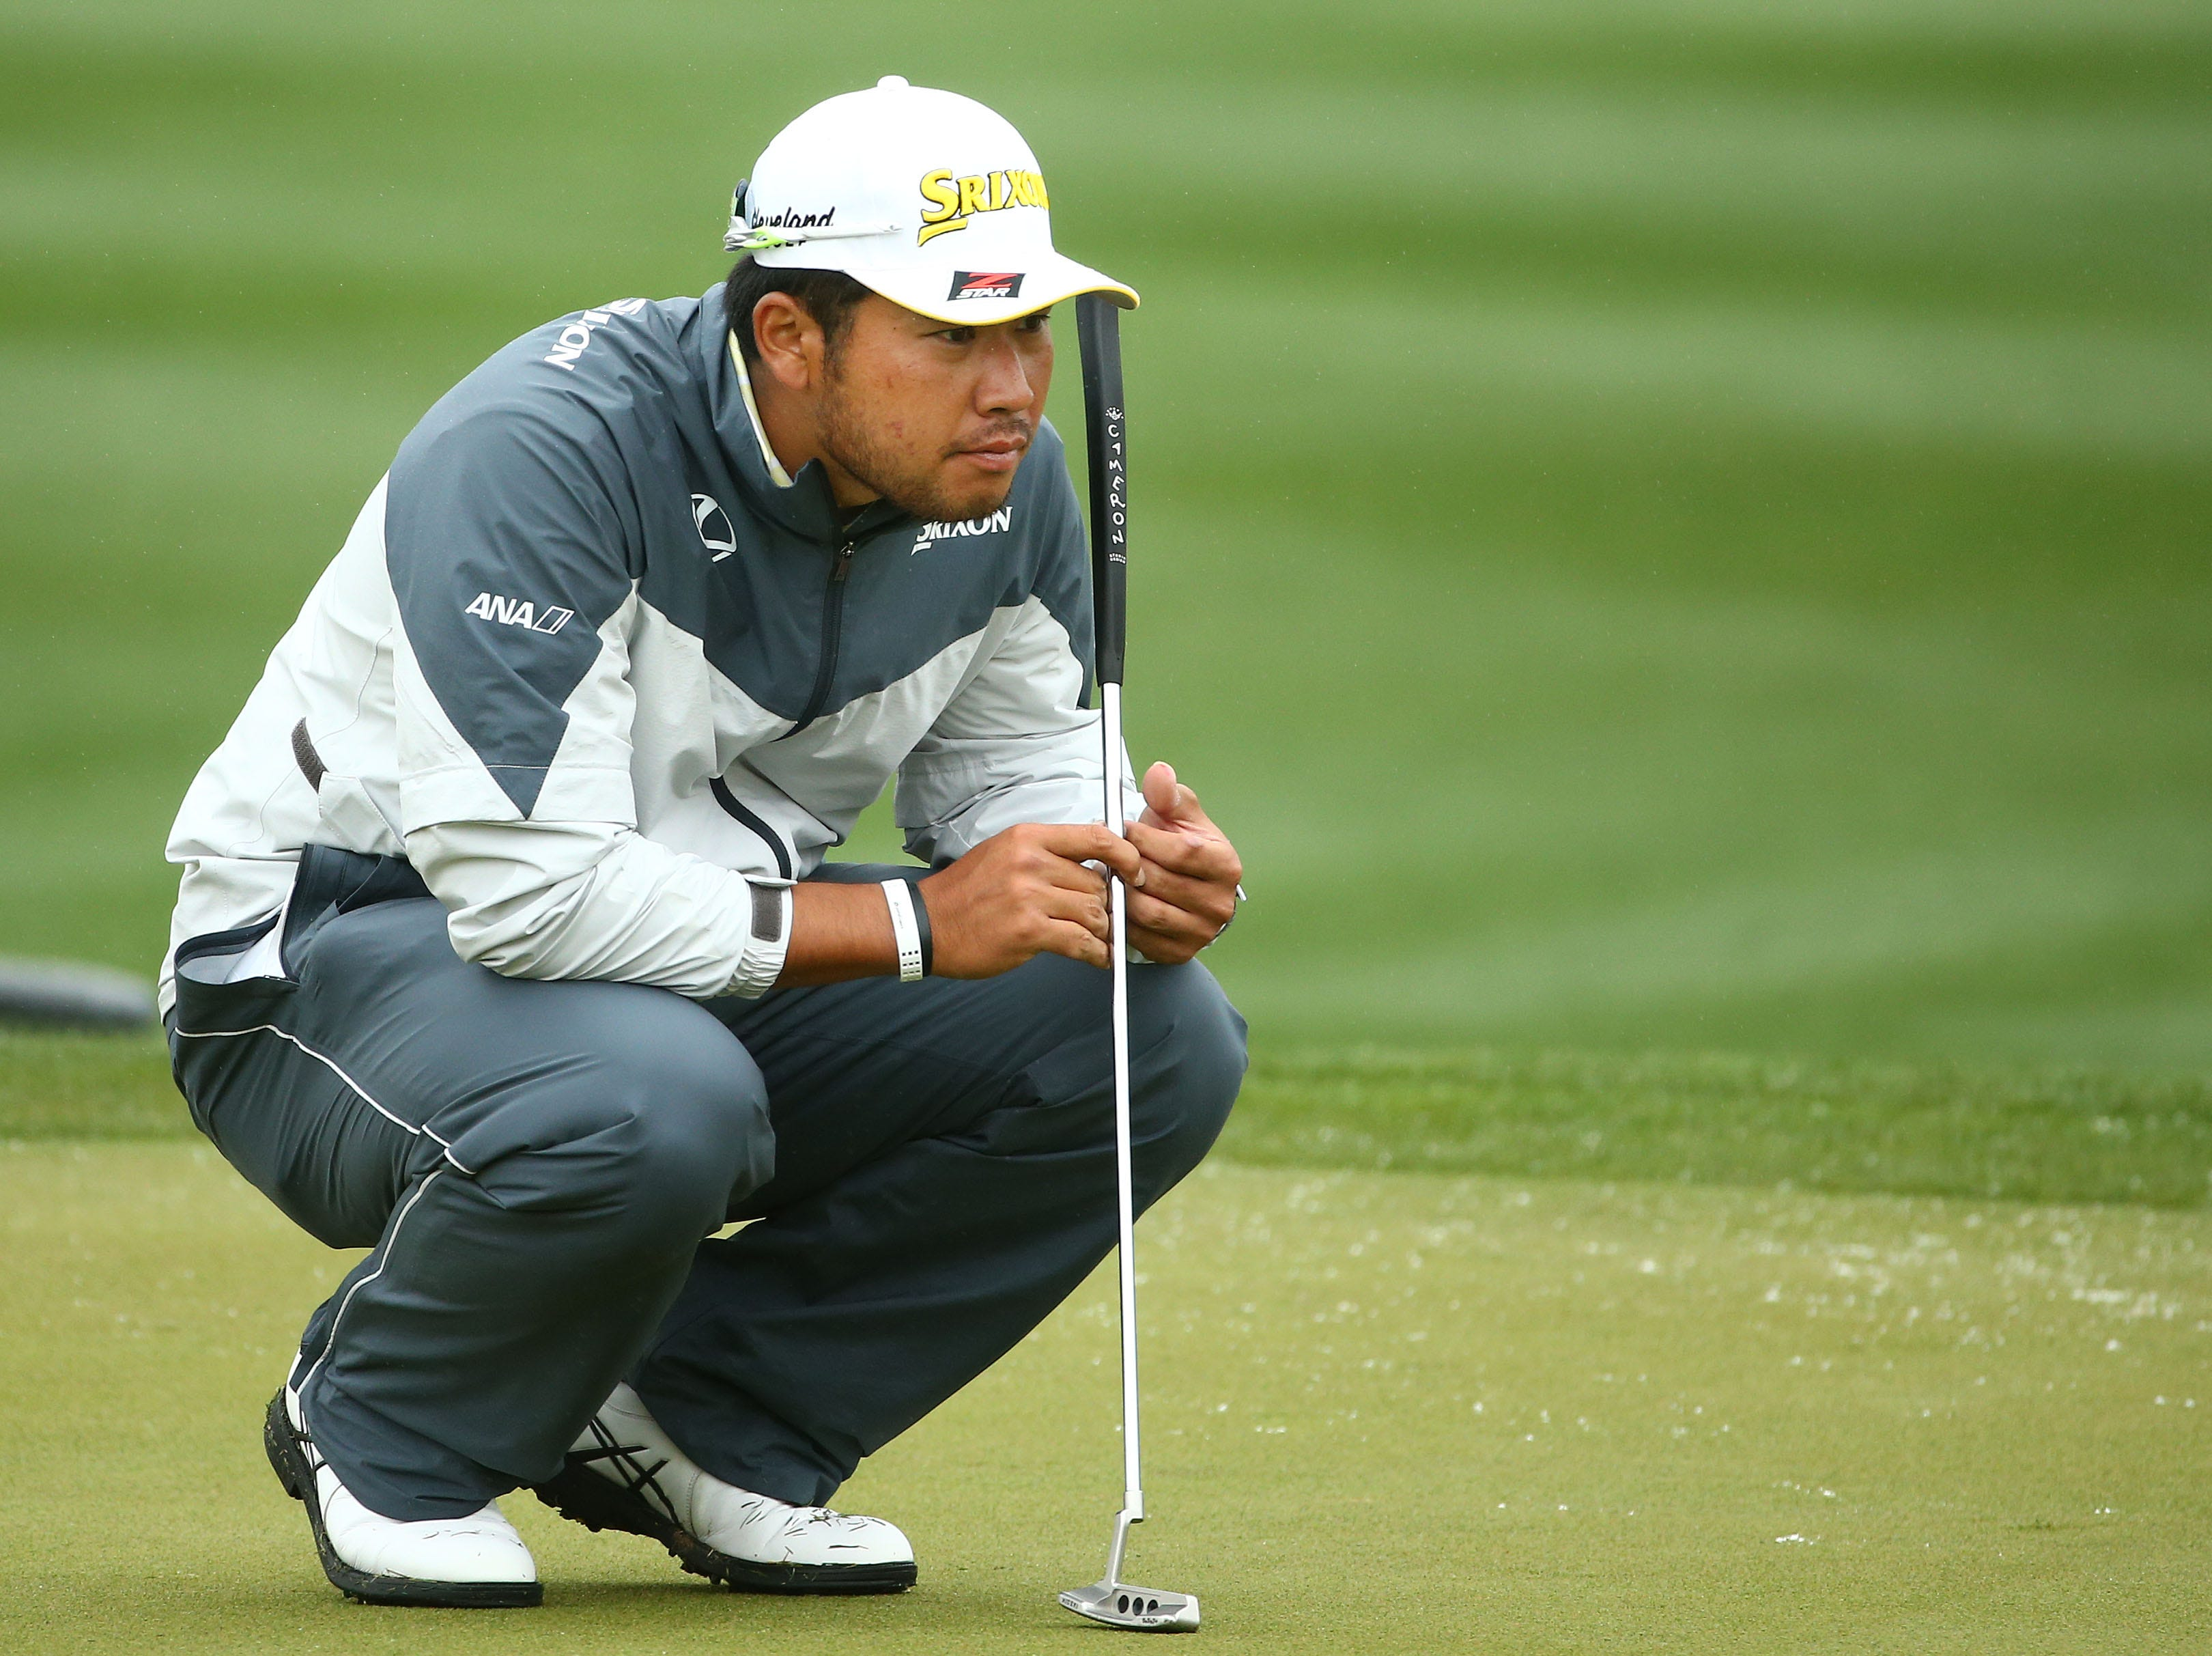 Hideki Matsuyama looks at his putt on the 6th green during final round action on Feb. 3 during the Waste Management Phoenix Open at the TPC Scottsdale Stadium Course.